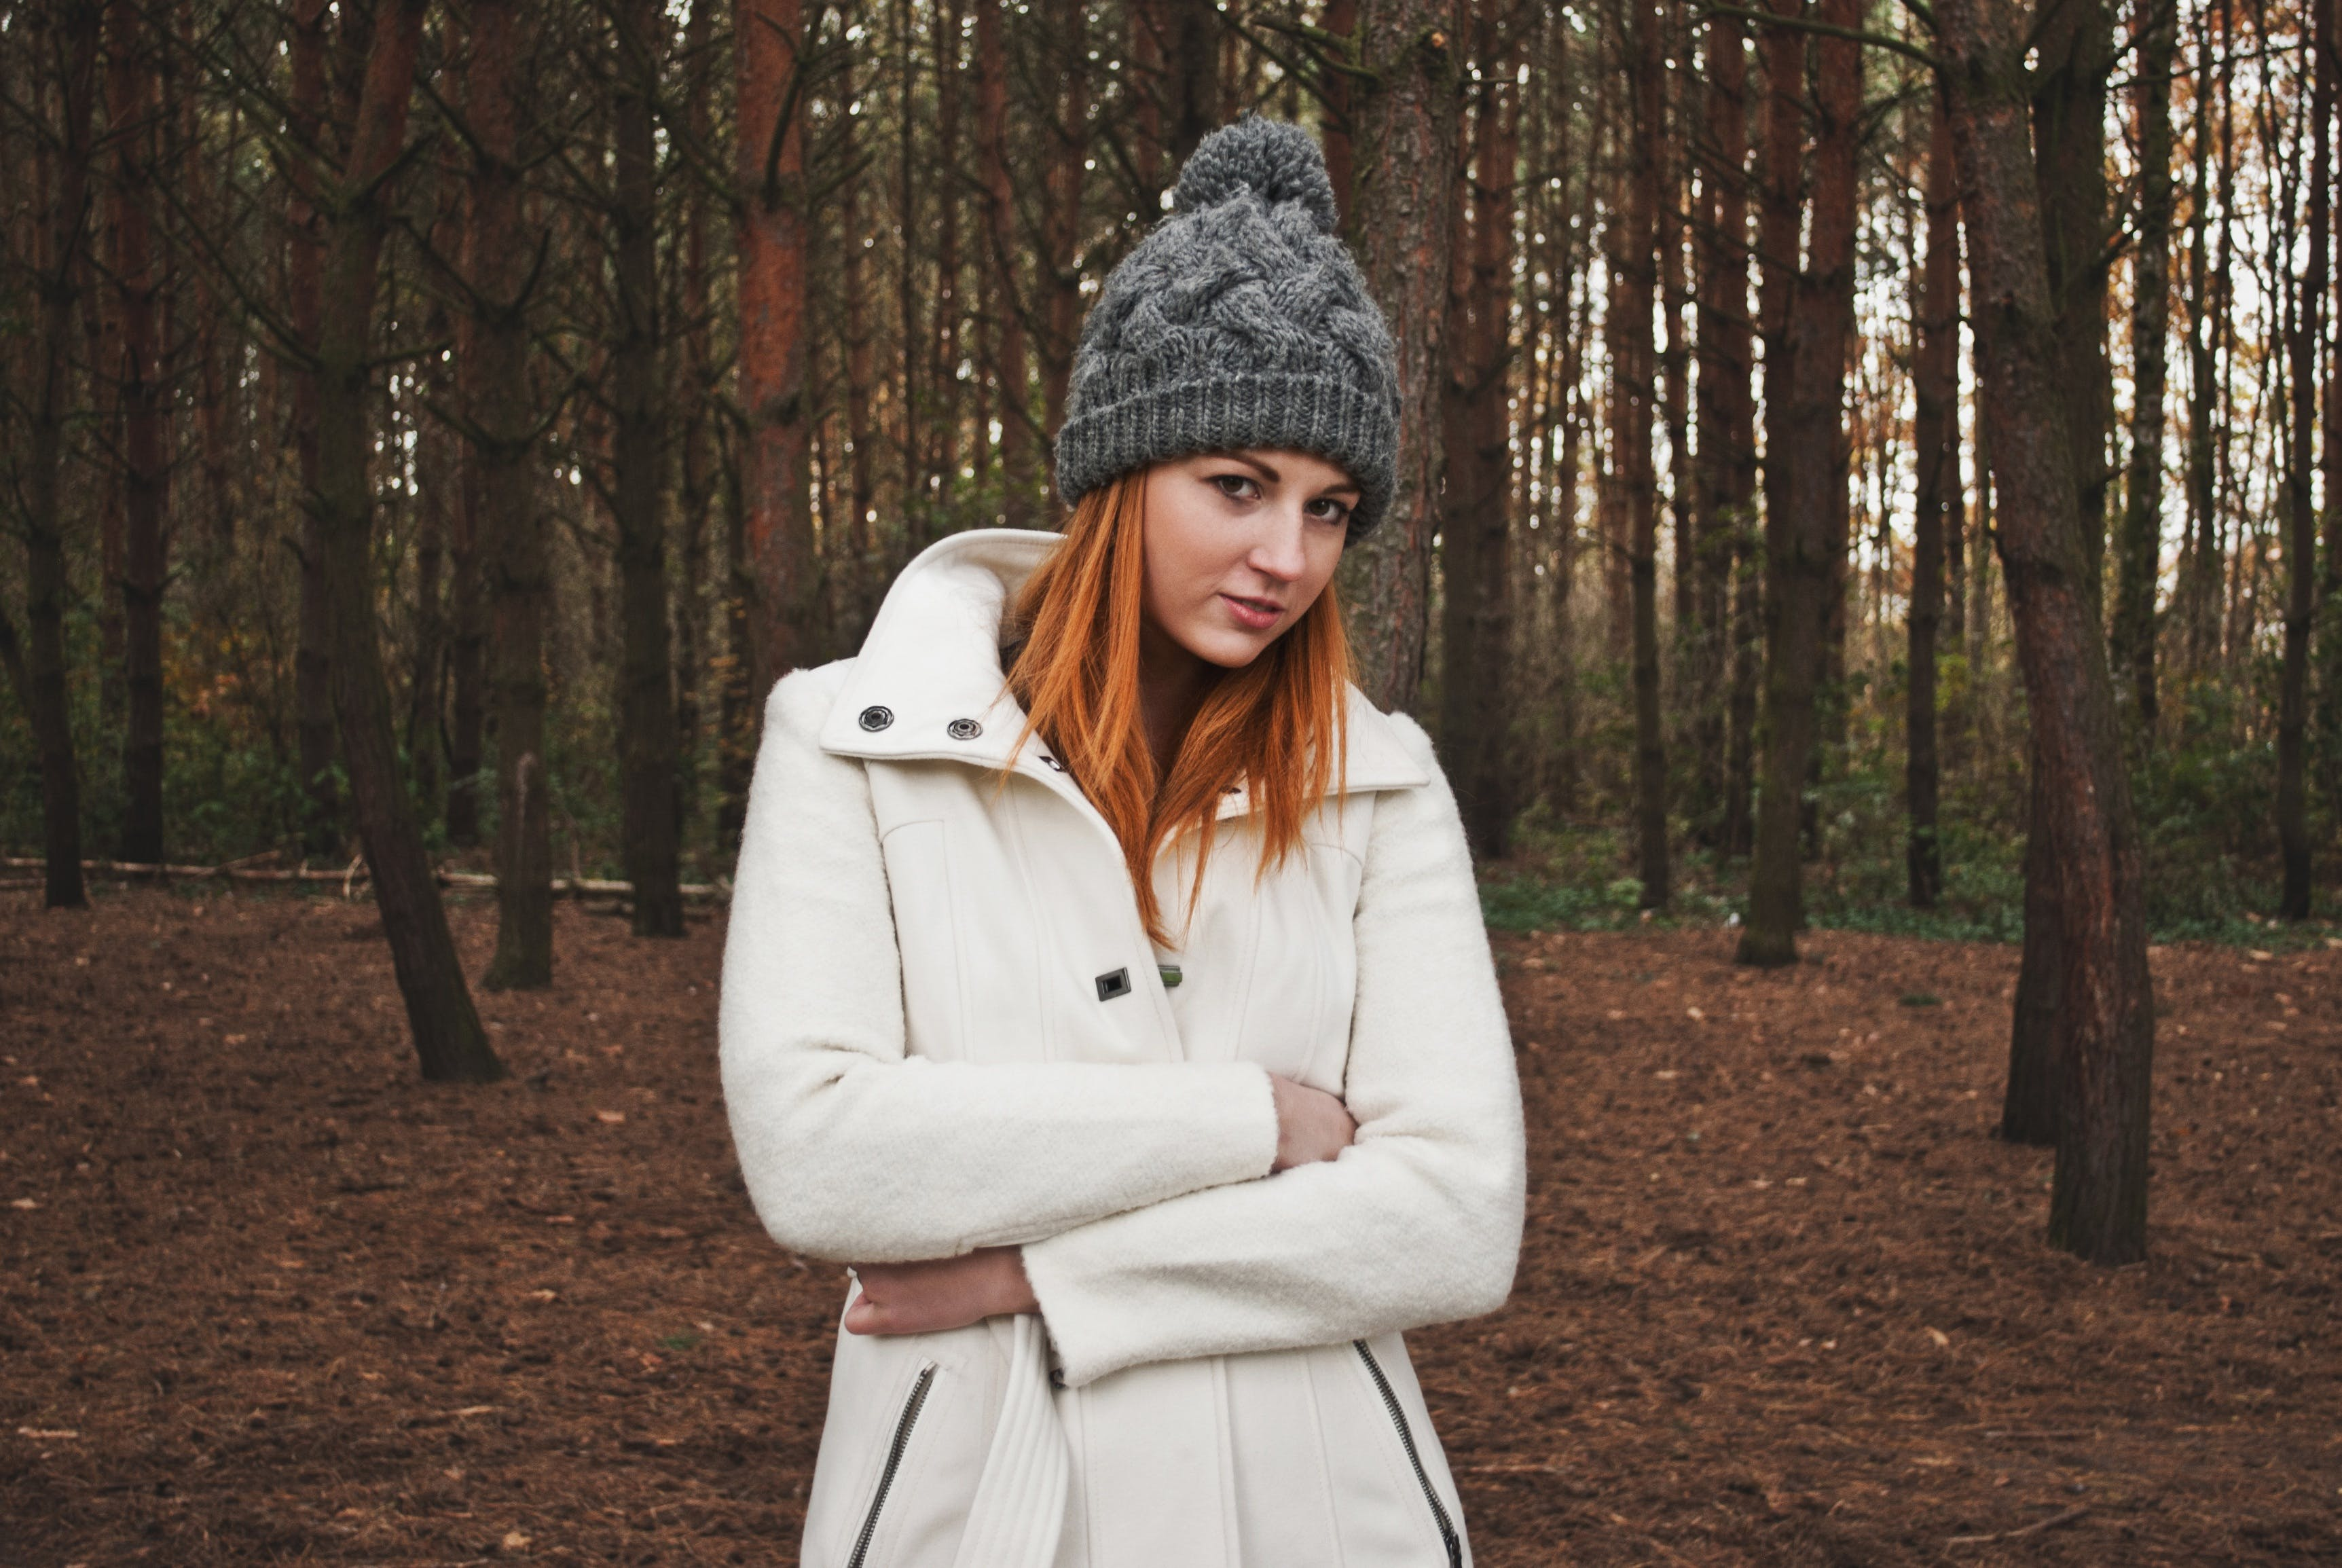 Portrait of Smiling Woman Standing in Forest